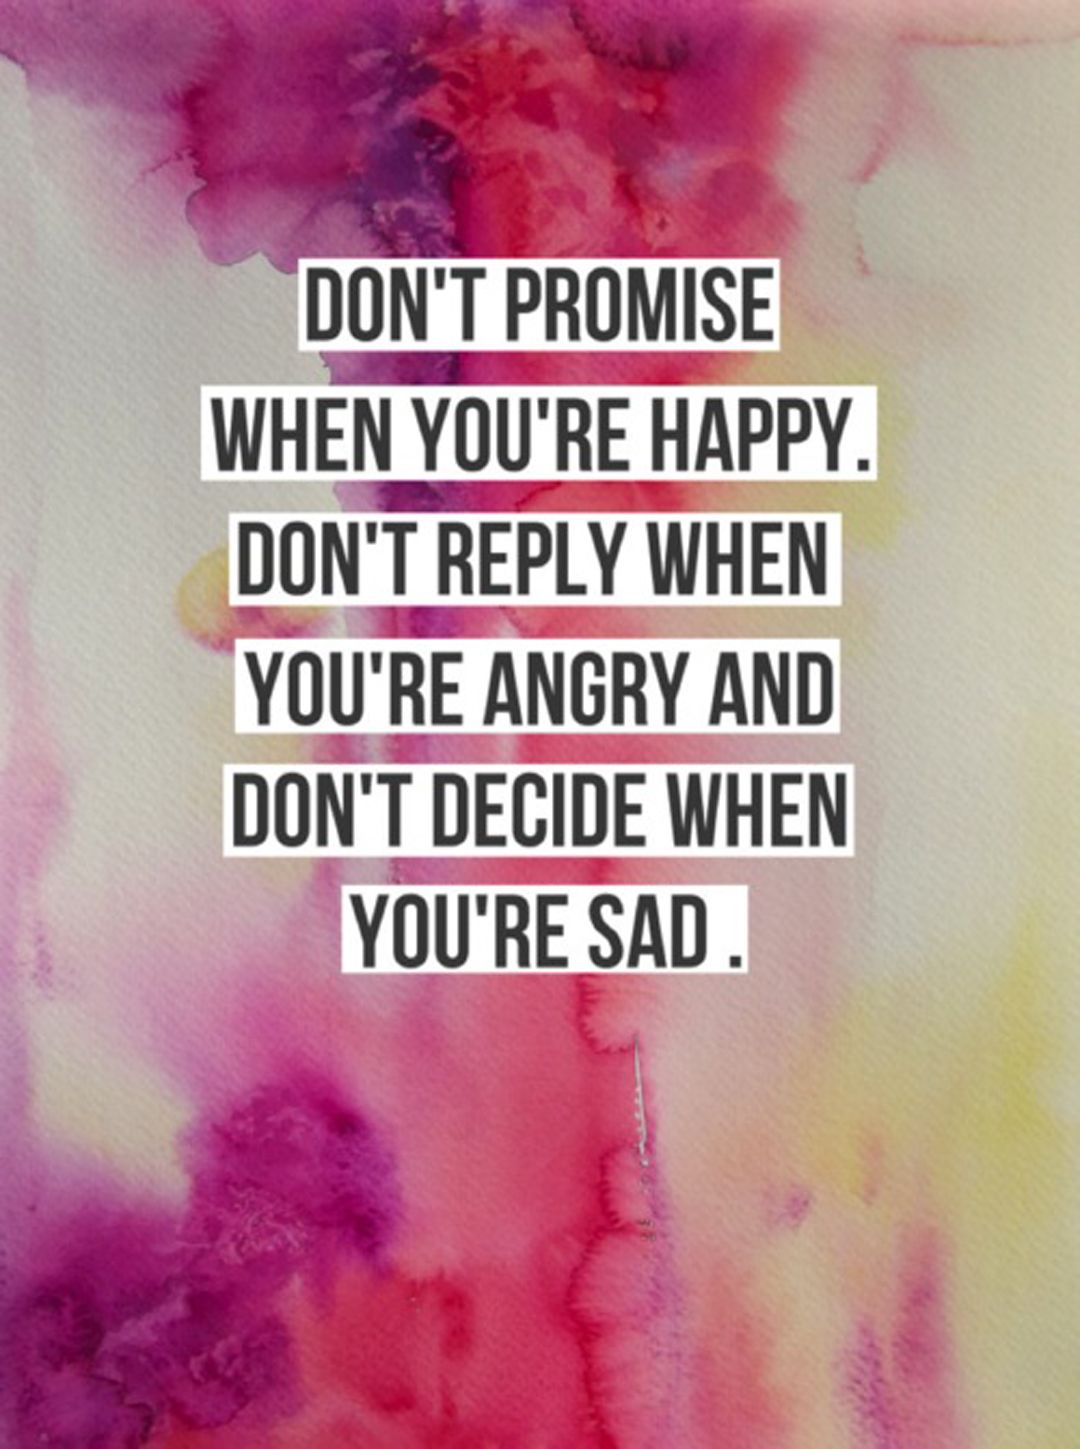 Life Lesson Quotes 25 Life Lesson Quotes With Images  Life Lesson Quotes Life